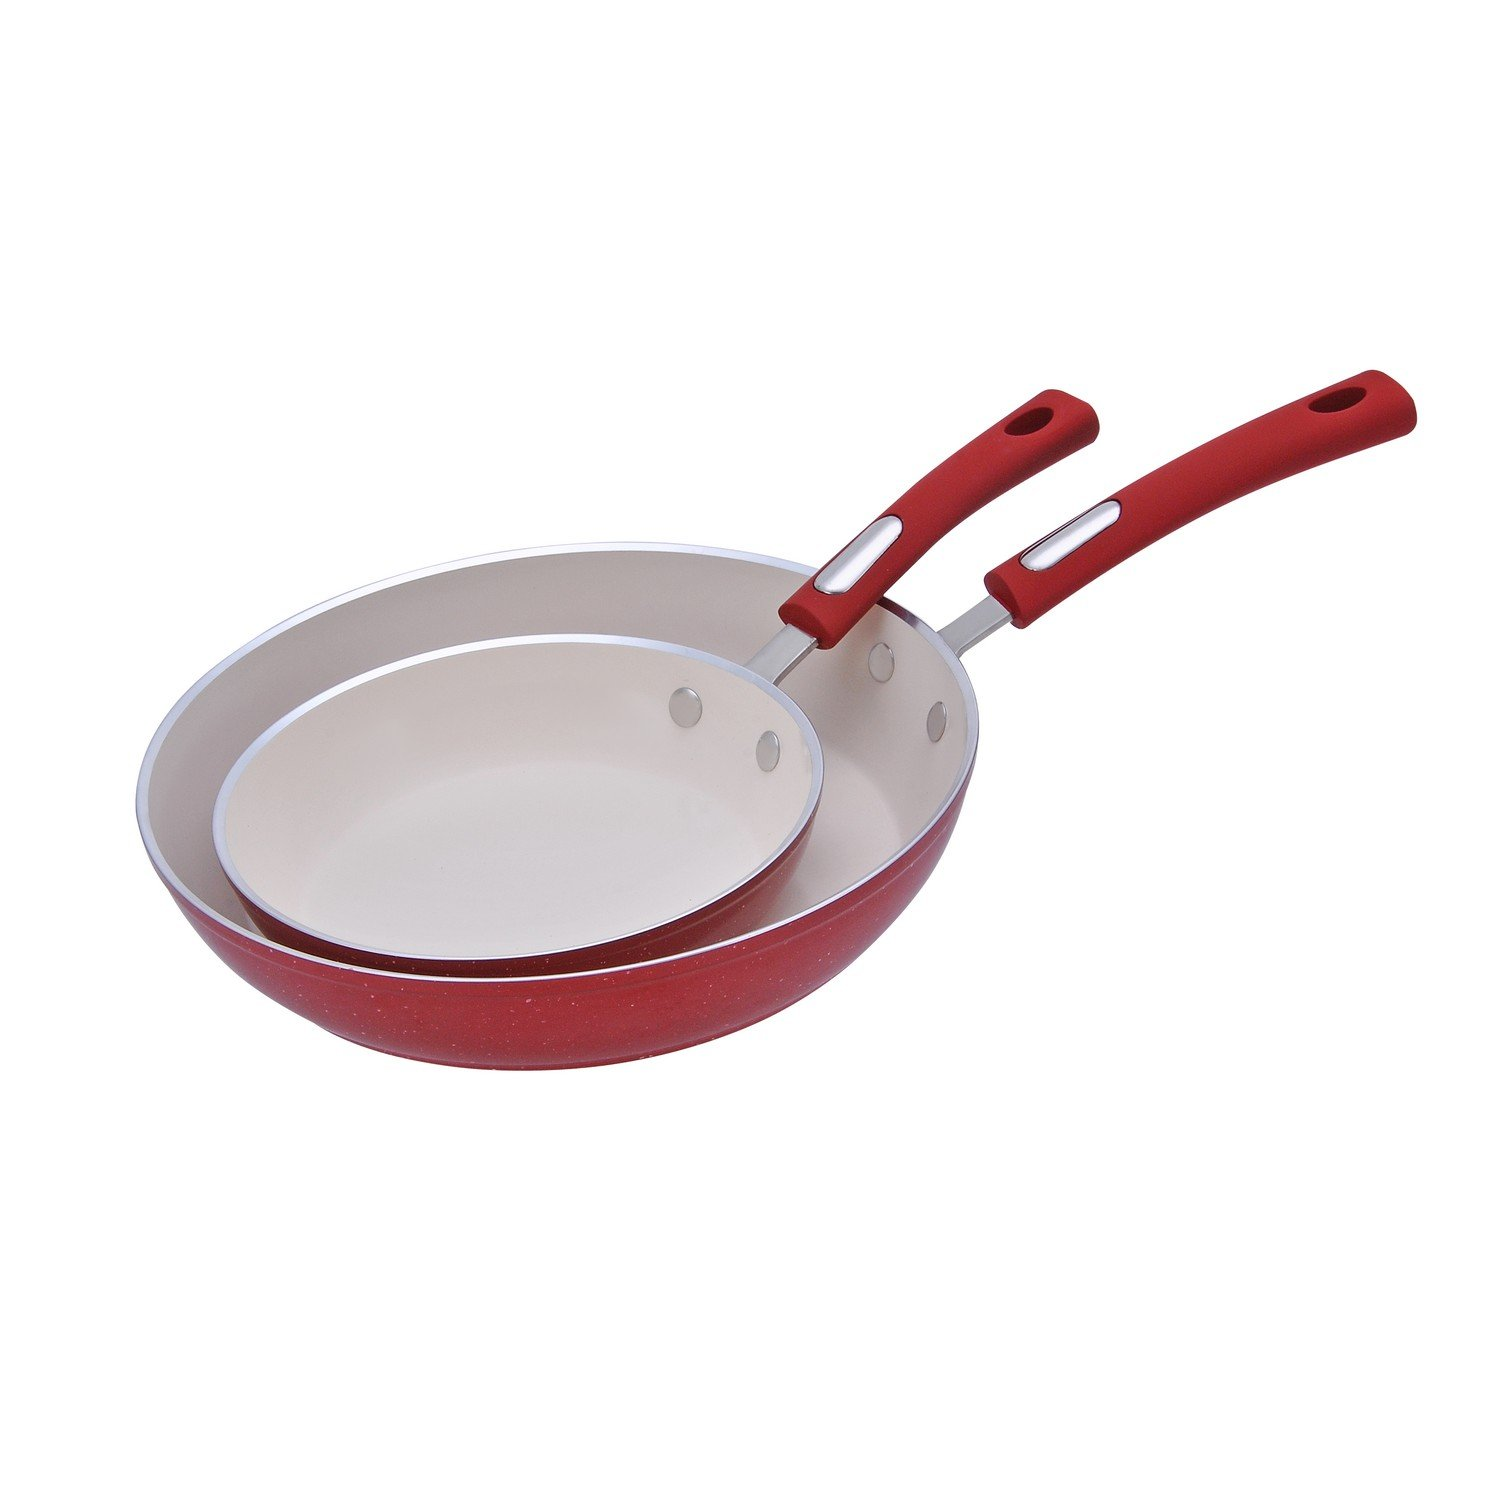 Hamilton Beach HAF602 Fry Pan Set, Non-Stick Fry Pan, 8.5'' & 11'', Red Speckled